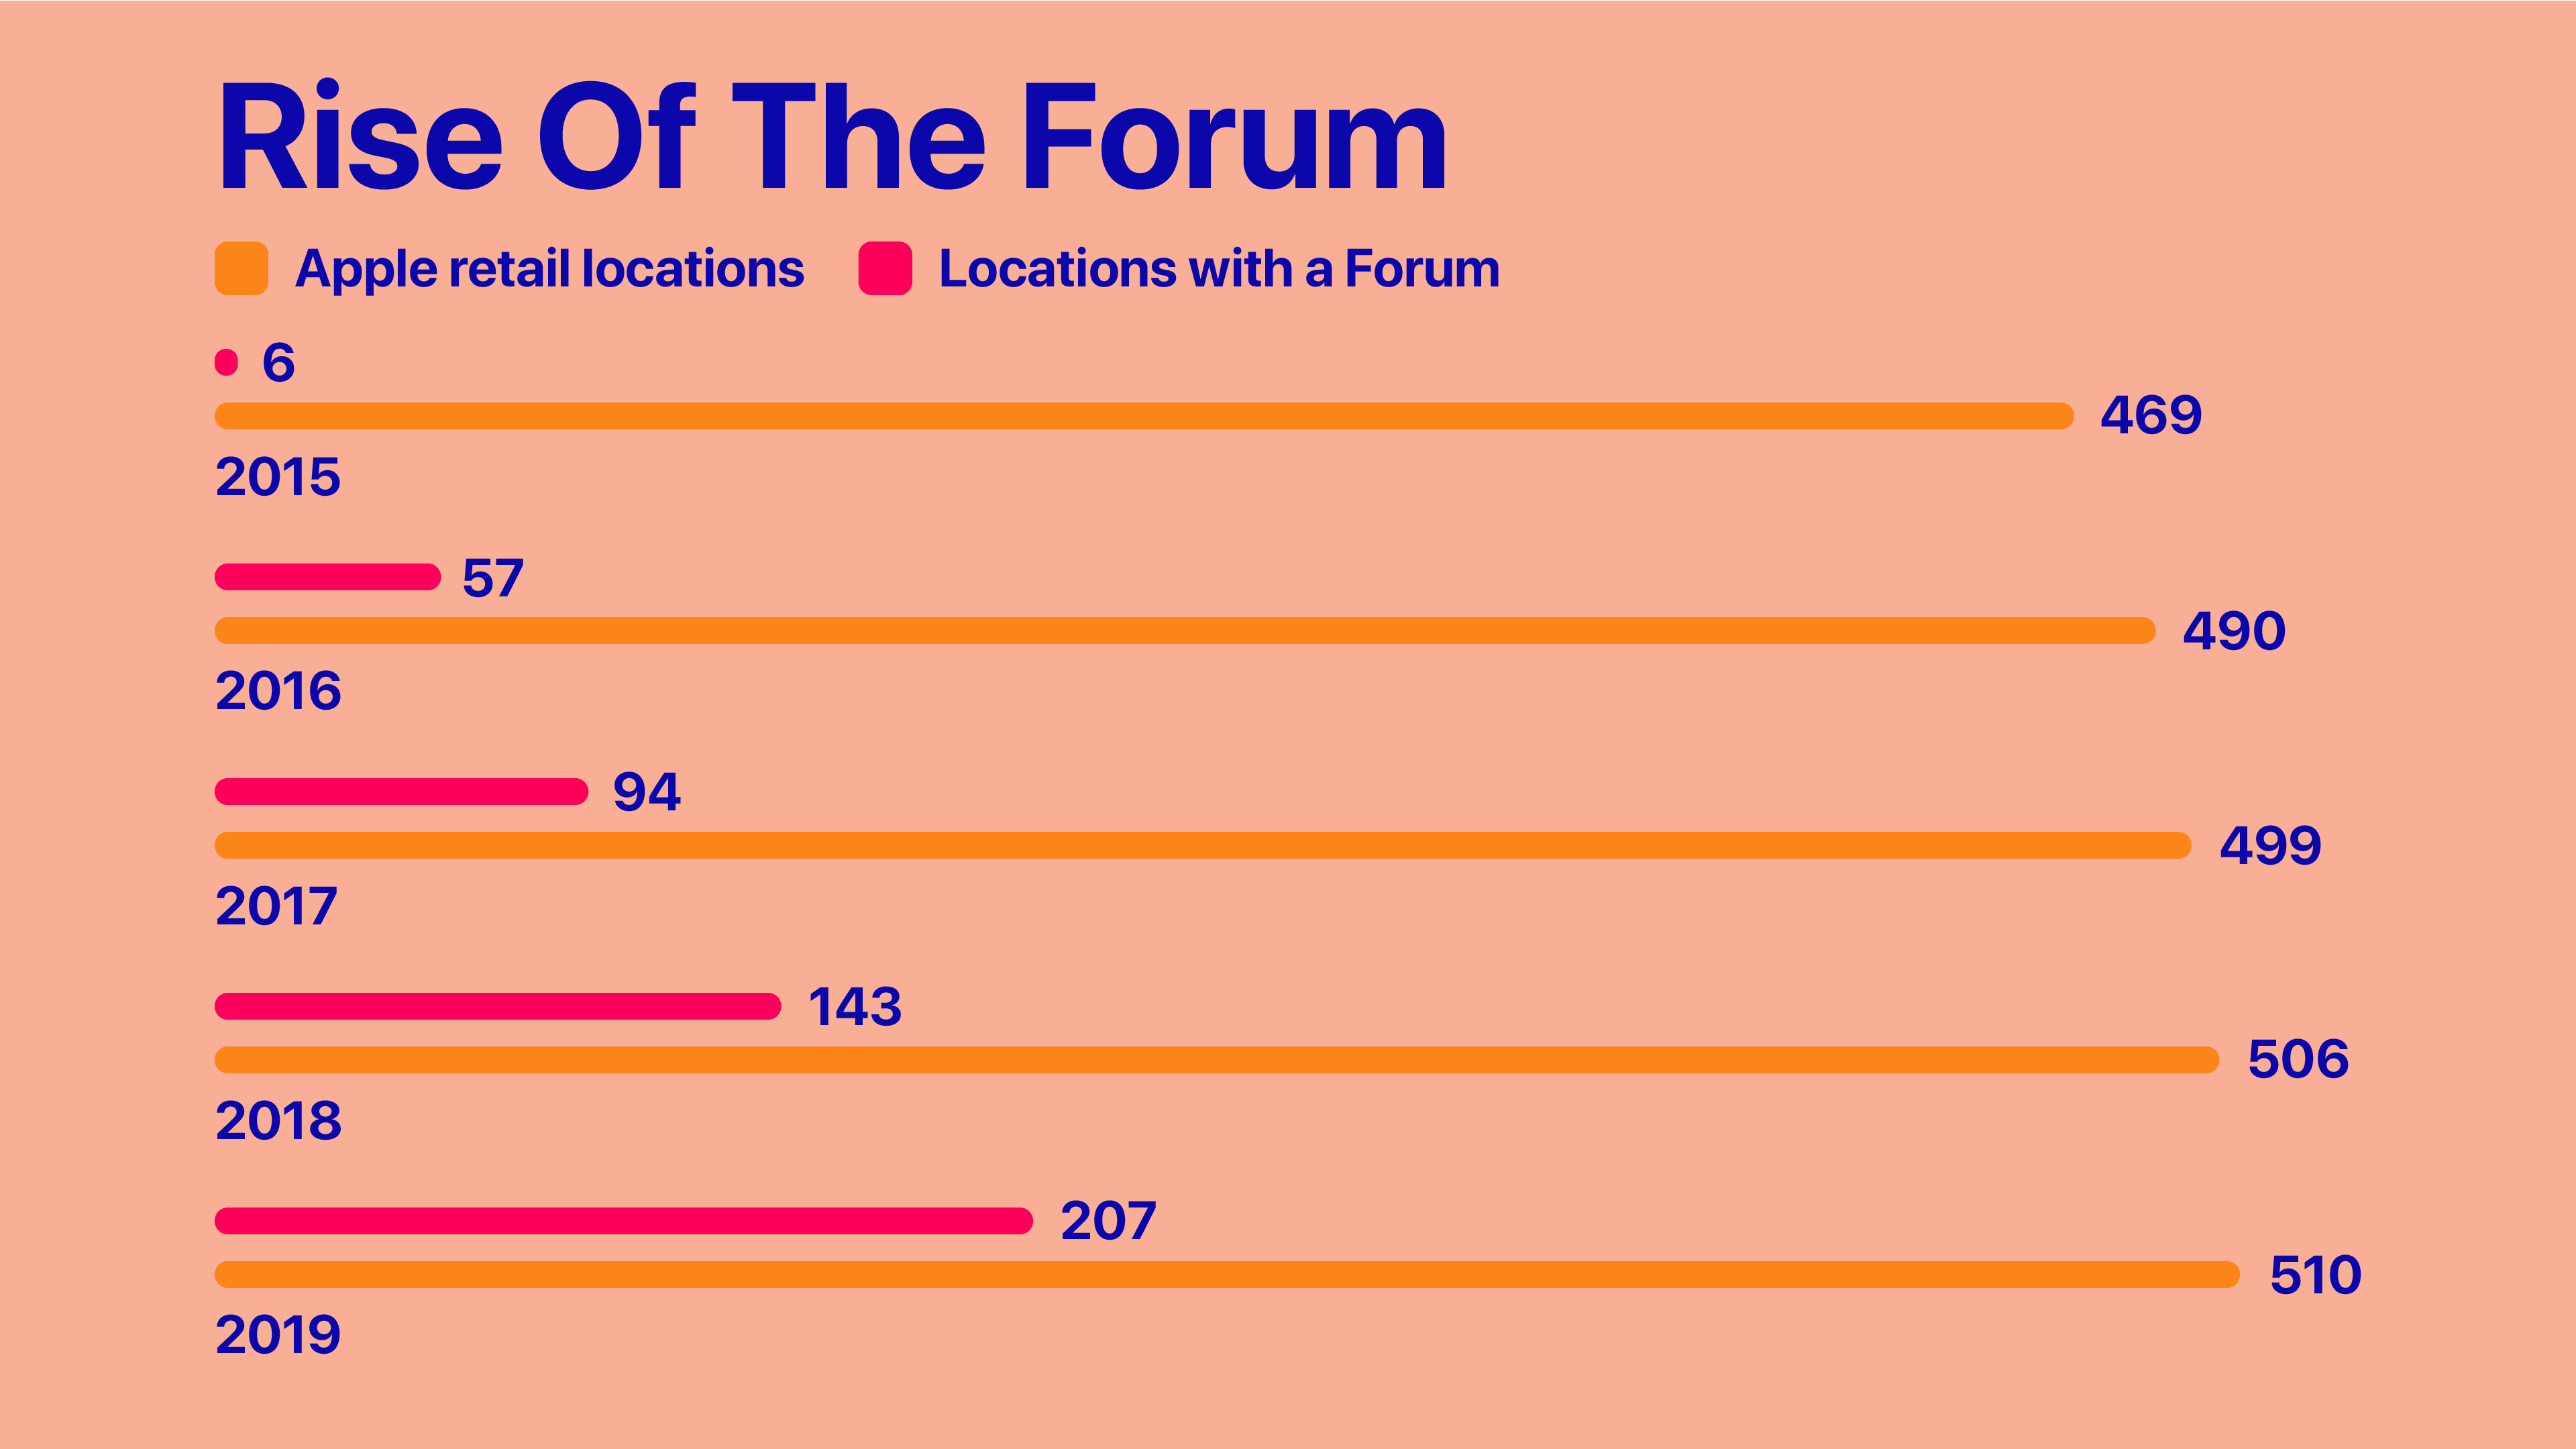 Comparison: Apple retail locations and locations with a Forum